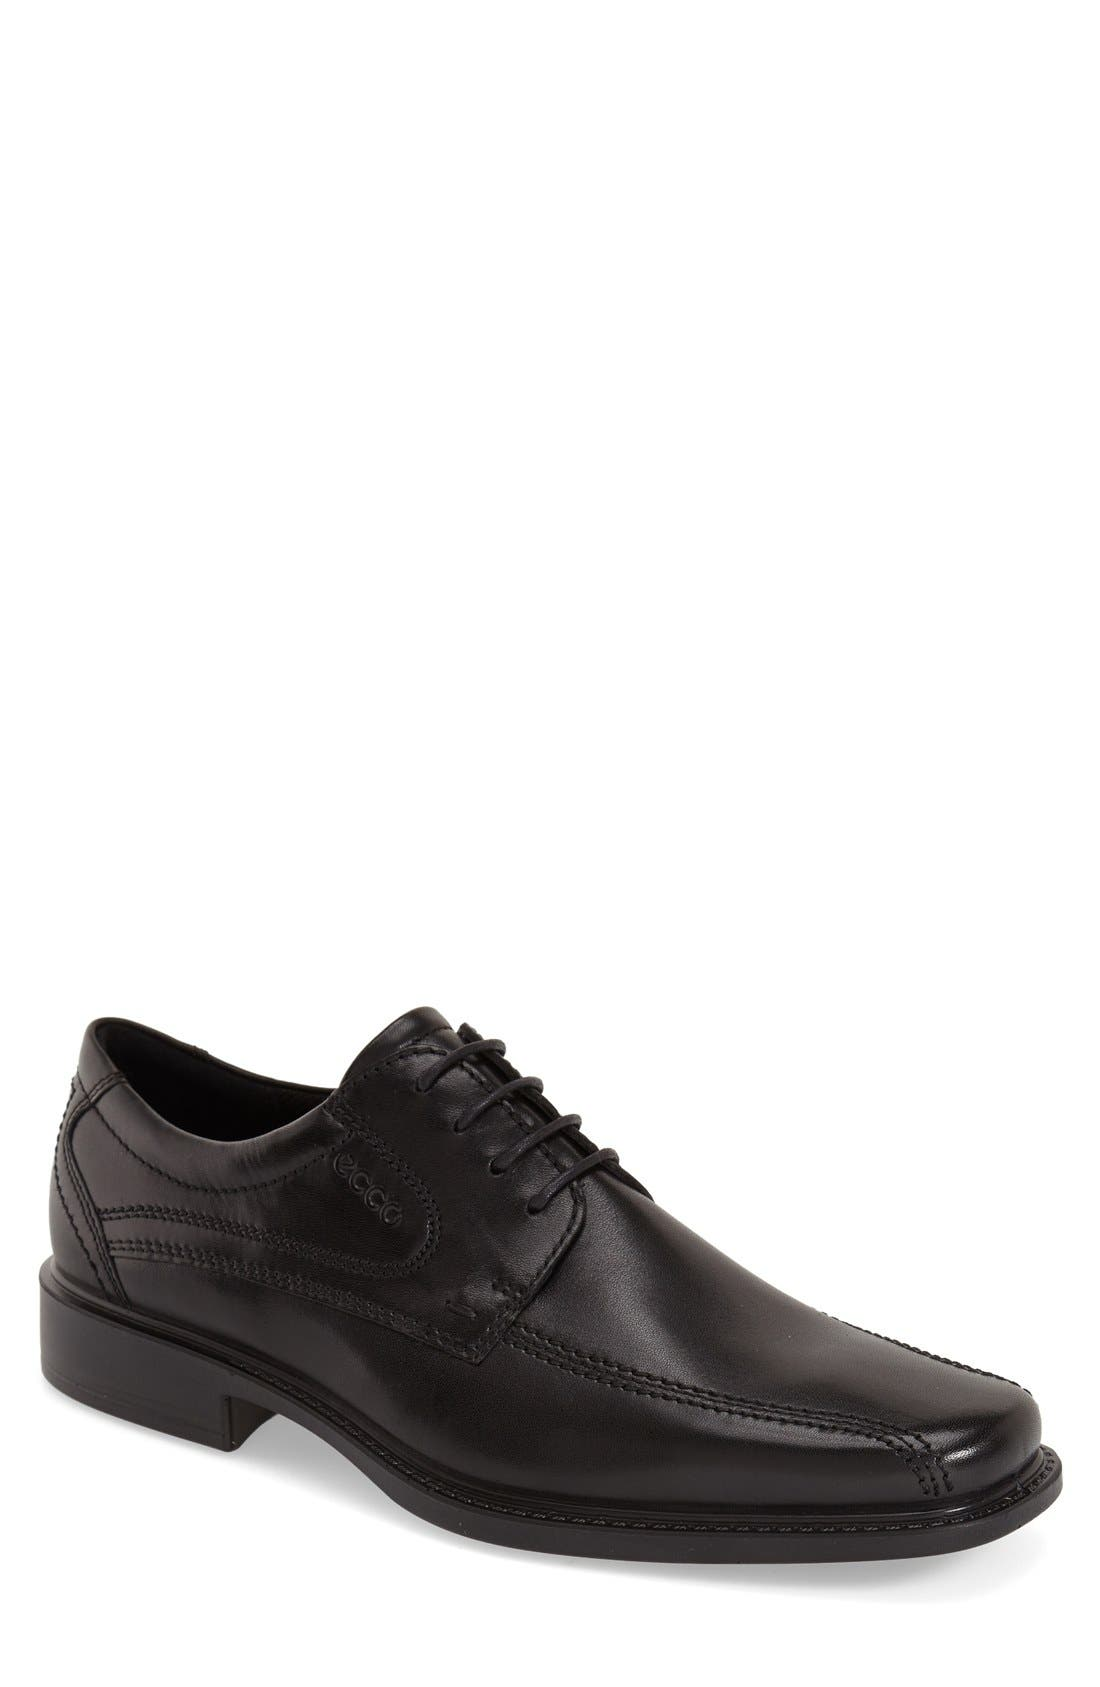 ECCO, 'New Jersey' Bicycle Toe Oxford, Main thumbnail 1, color, BLACK